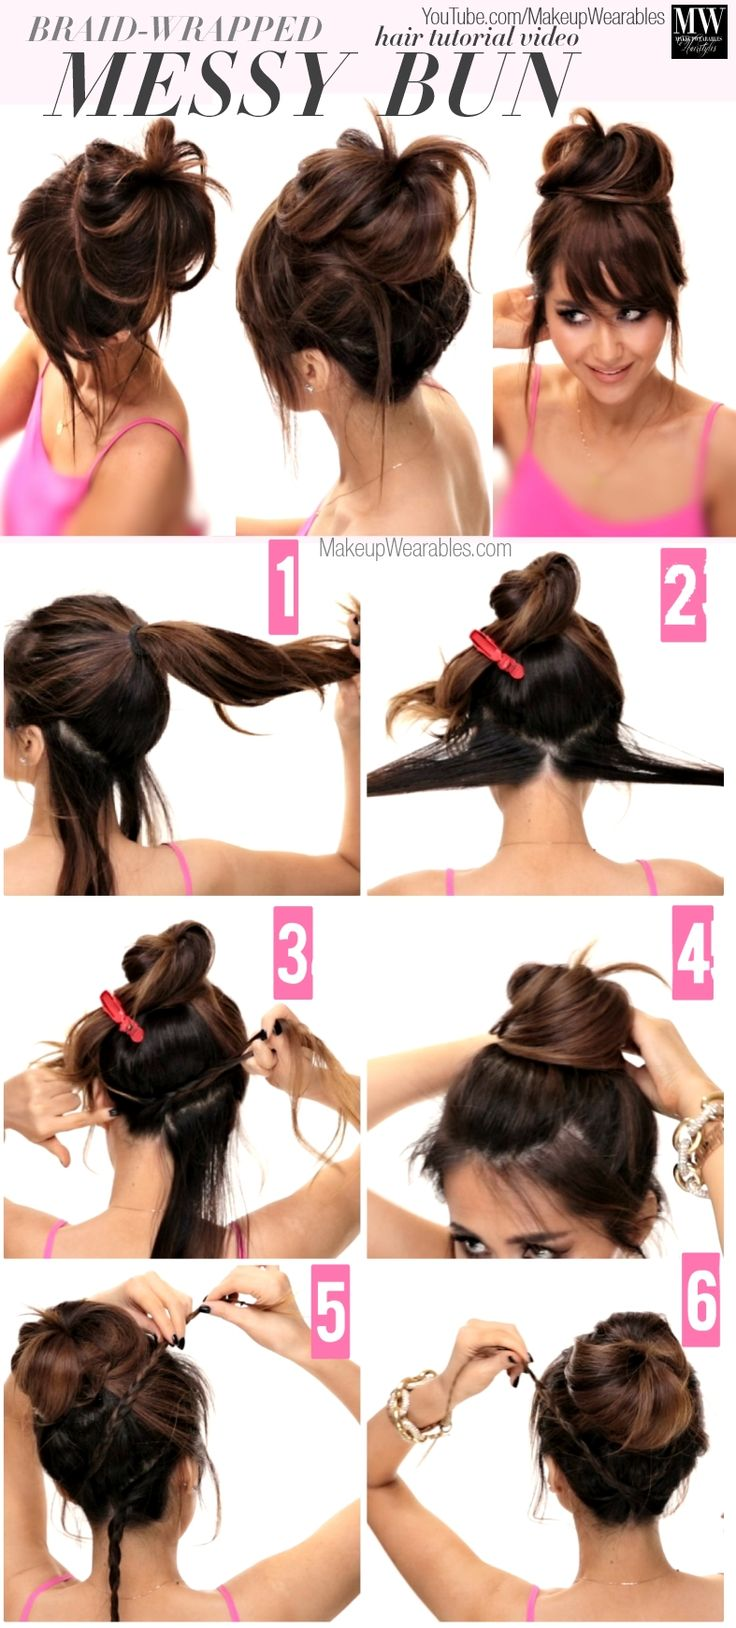 Strange 22 Easy Hairstyles For Girls With Tutorials Pretty Designs Hairstyle Inspiration Daily Dogsangcom